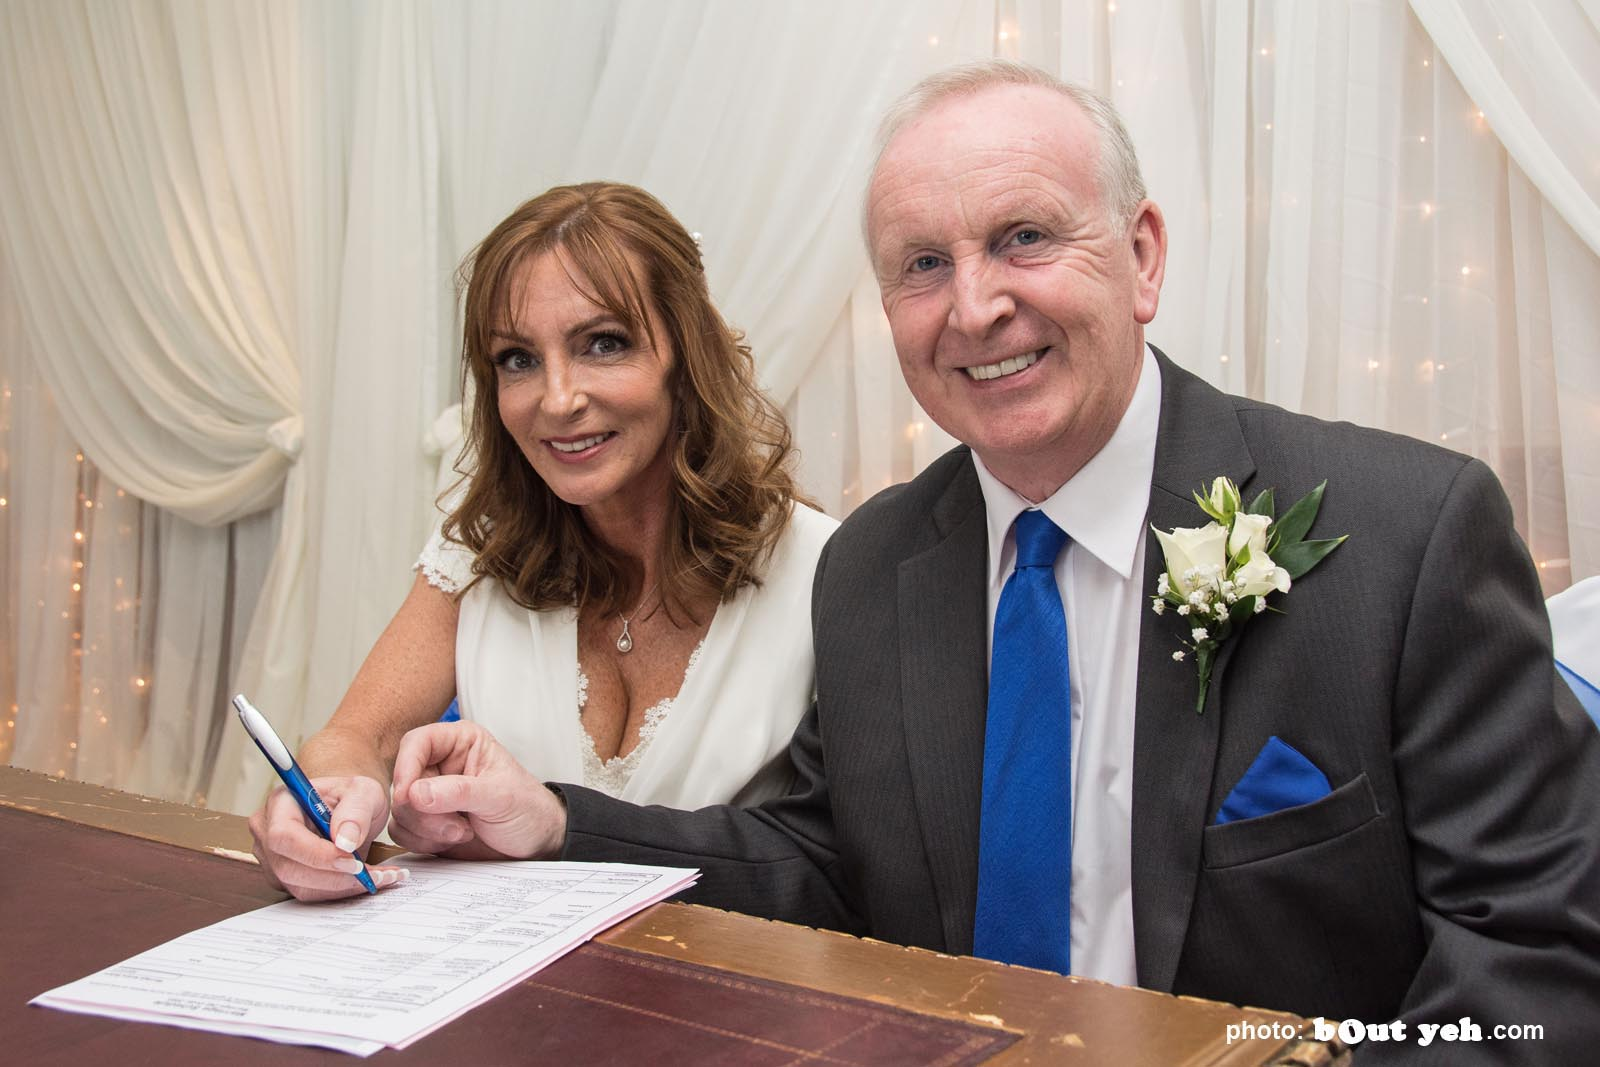 Michael and Annette's wedding photographed by Bout Yeh wedding photographers and video services Belfast and Northern Ireland. Photo 5955